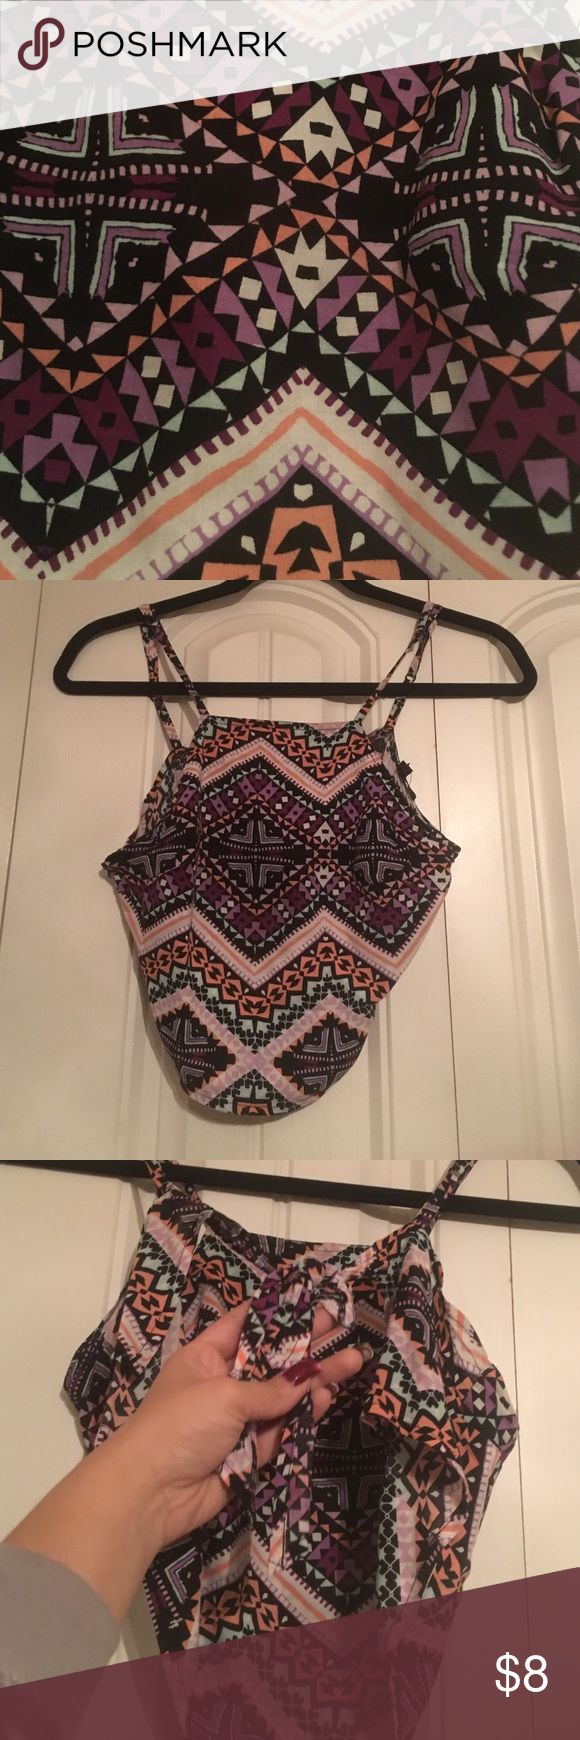 TRIBAL BAREBACK CROP TOP Tribal has been and is still the trend! This cute top was bought at Express. Tribal crop top with only a string to tie in a bow on the back(bareback)! Sexy, flirty, fun! Size XS Express Tops Crop Tops